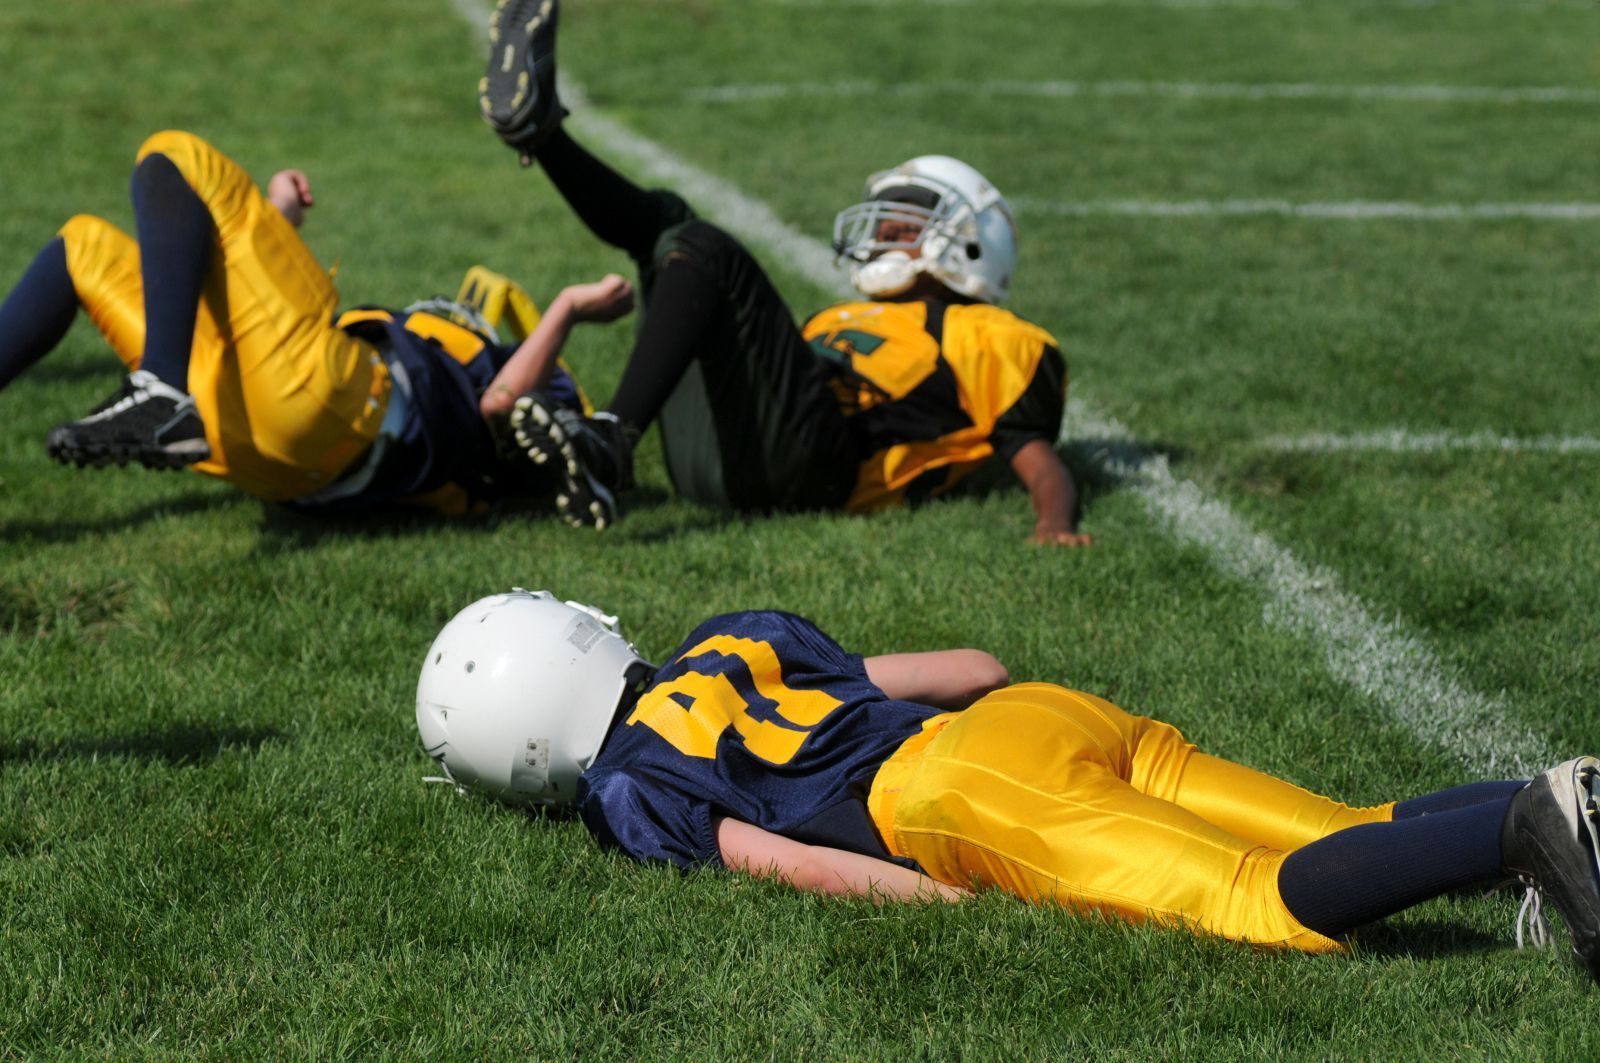 Everything we know about concussions is wrong Sports